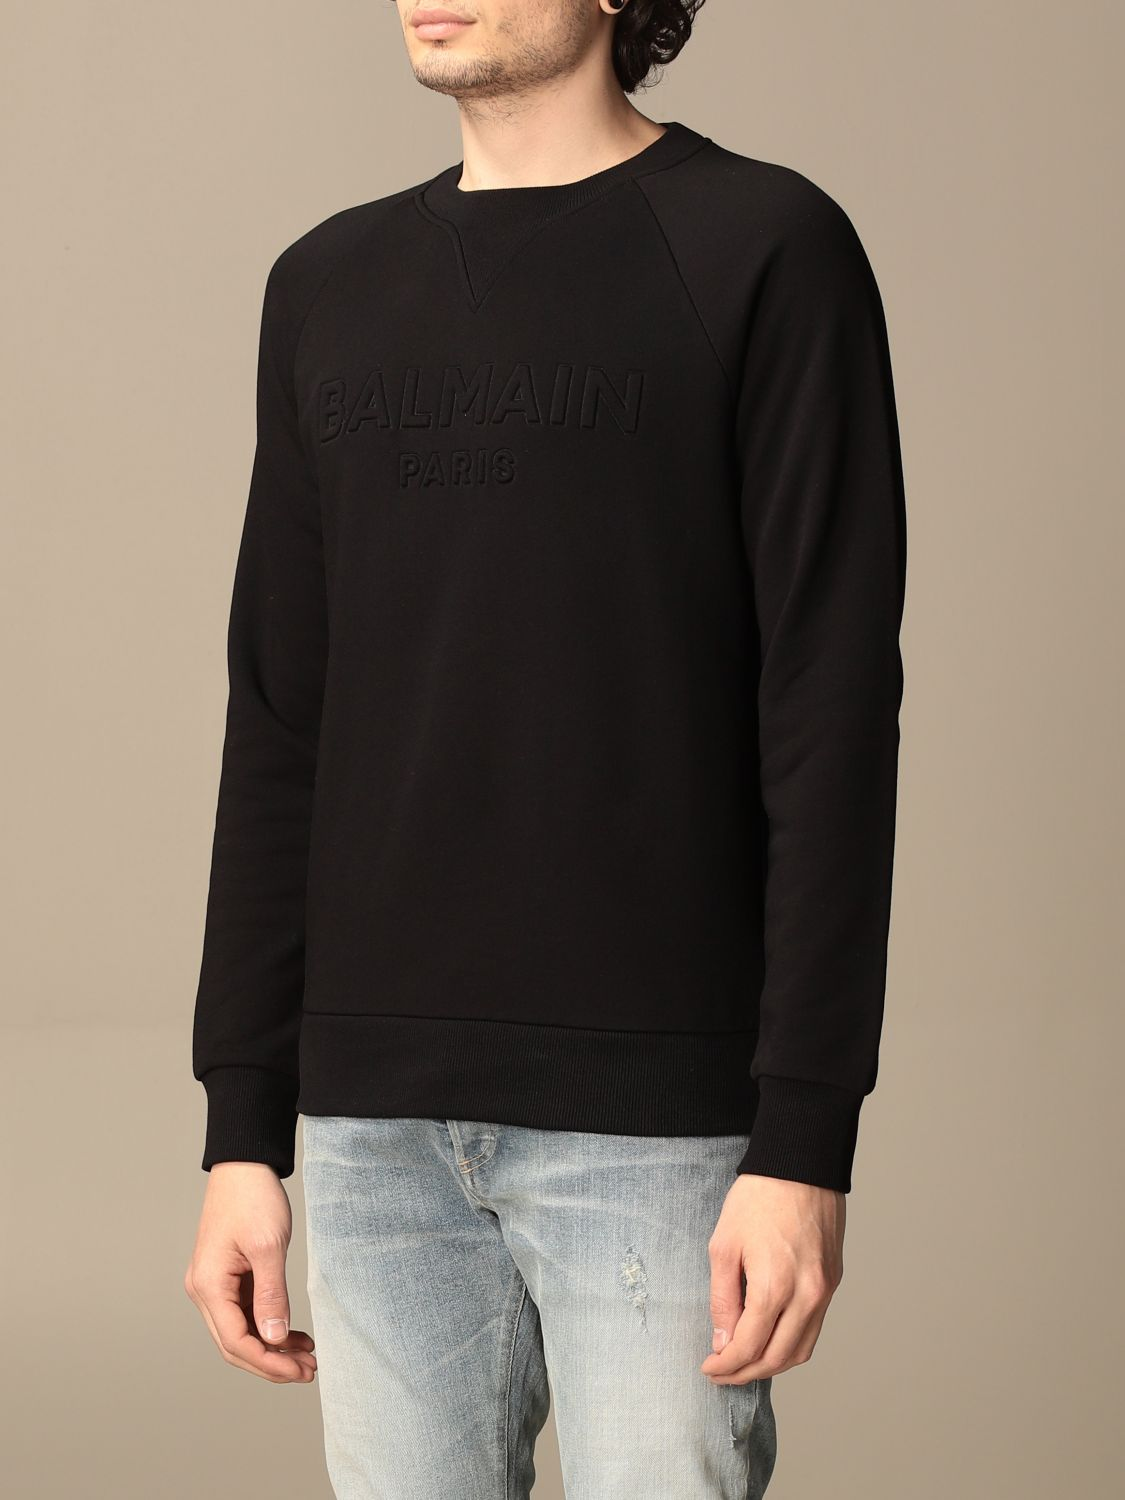 Sweatshirt Balmain: Balmain cotton sweatshirt with logo black 4